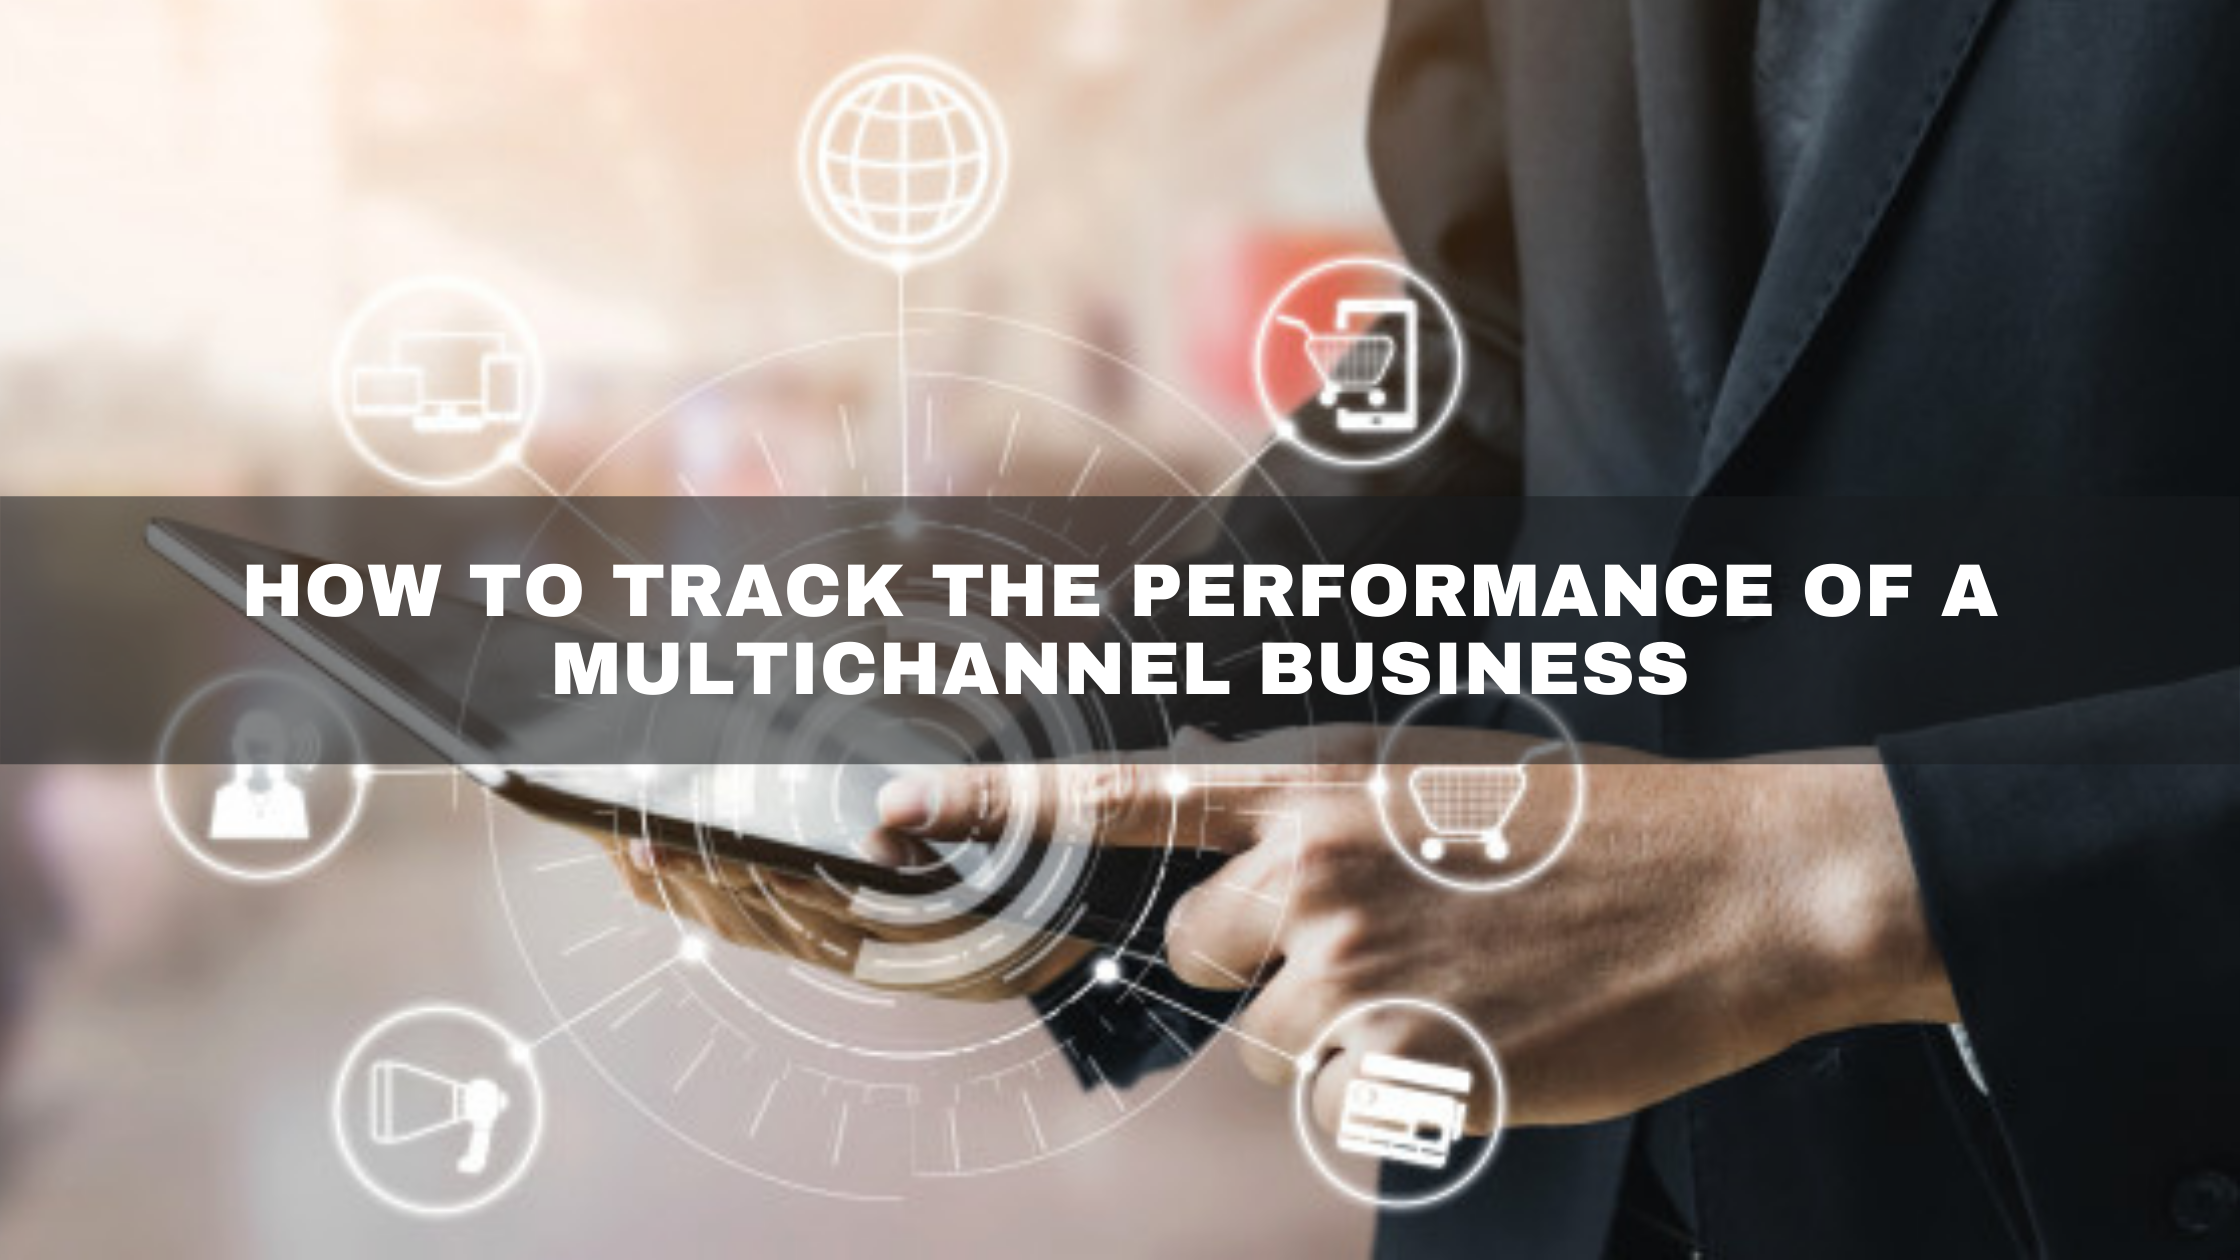 How to track the performance of a multichannel business